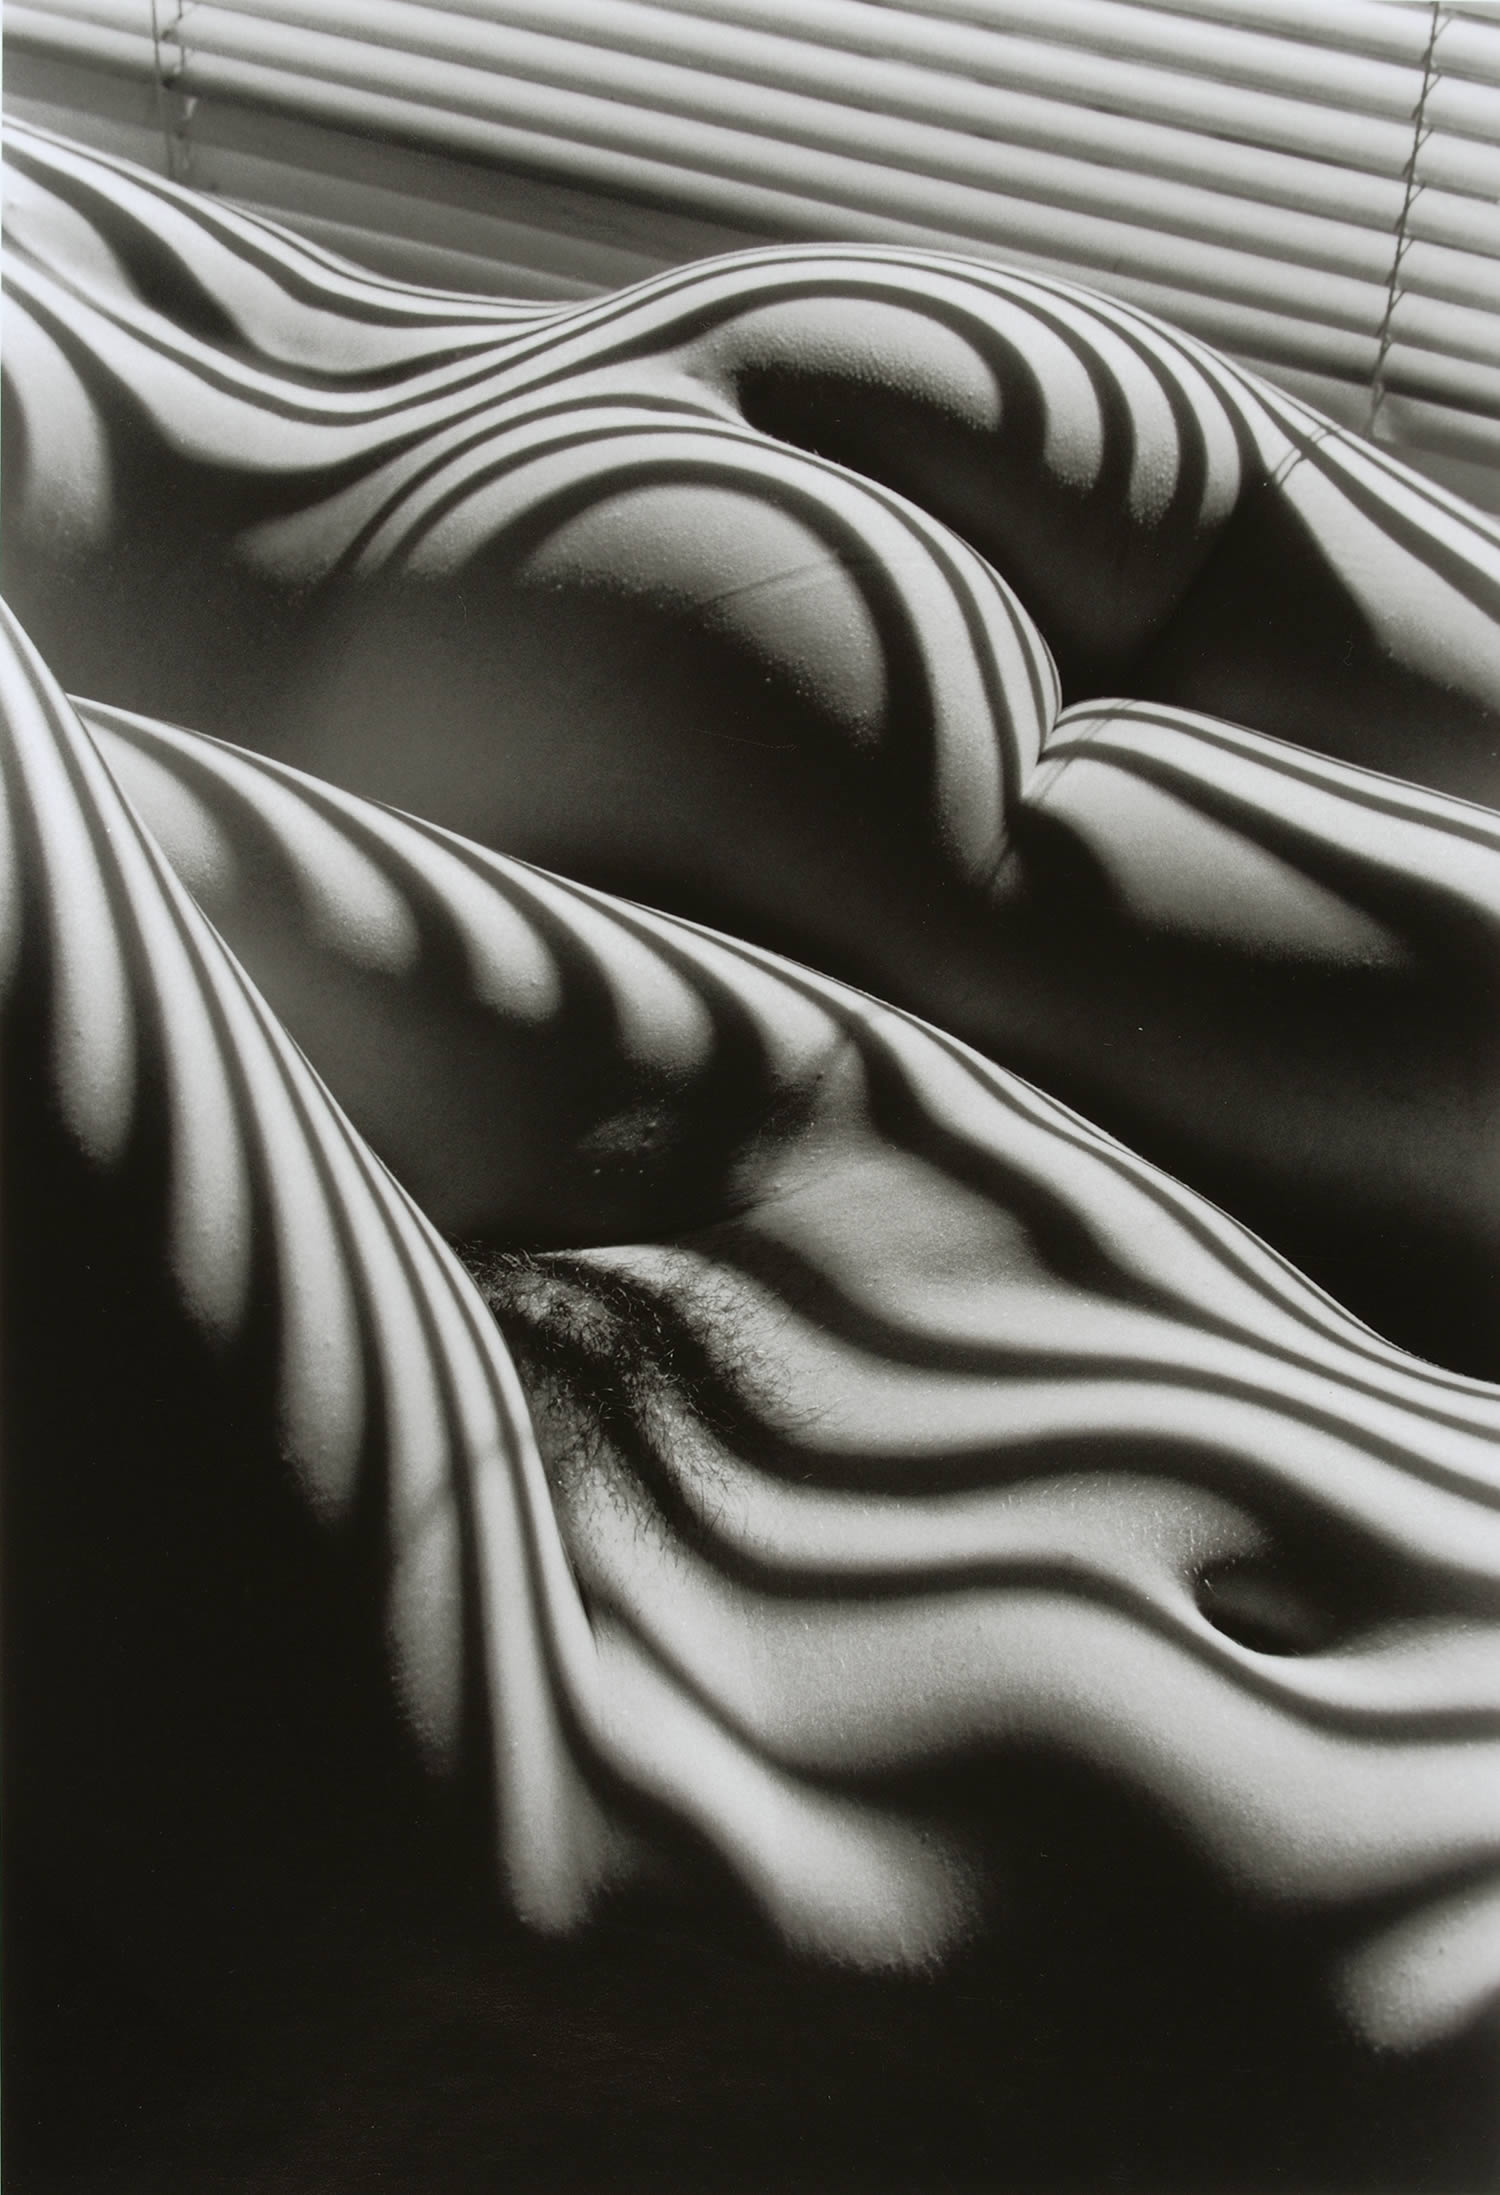 zebra striped nude, photography by lucien clergue